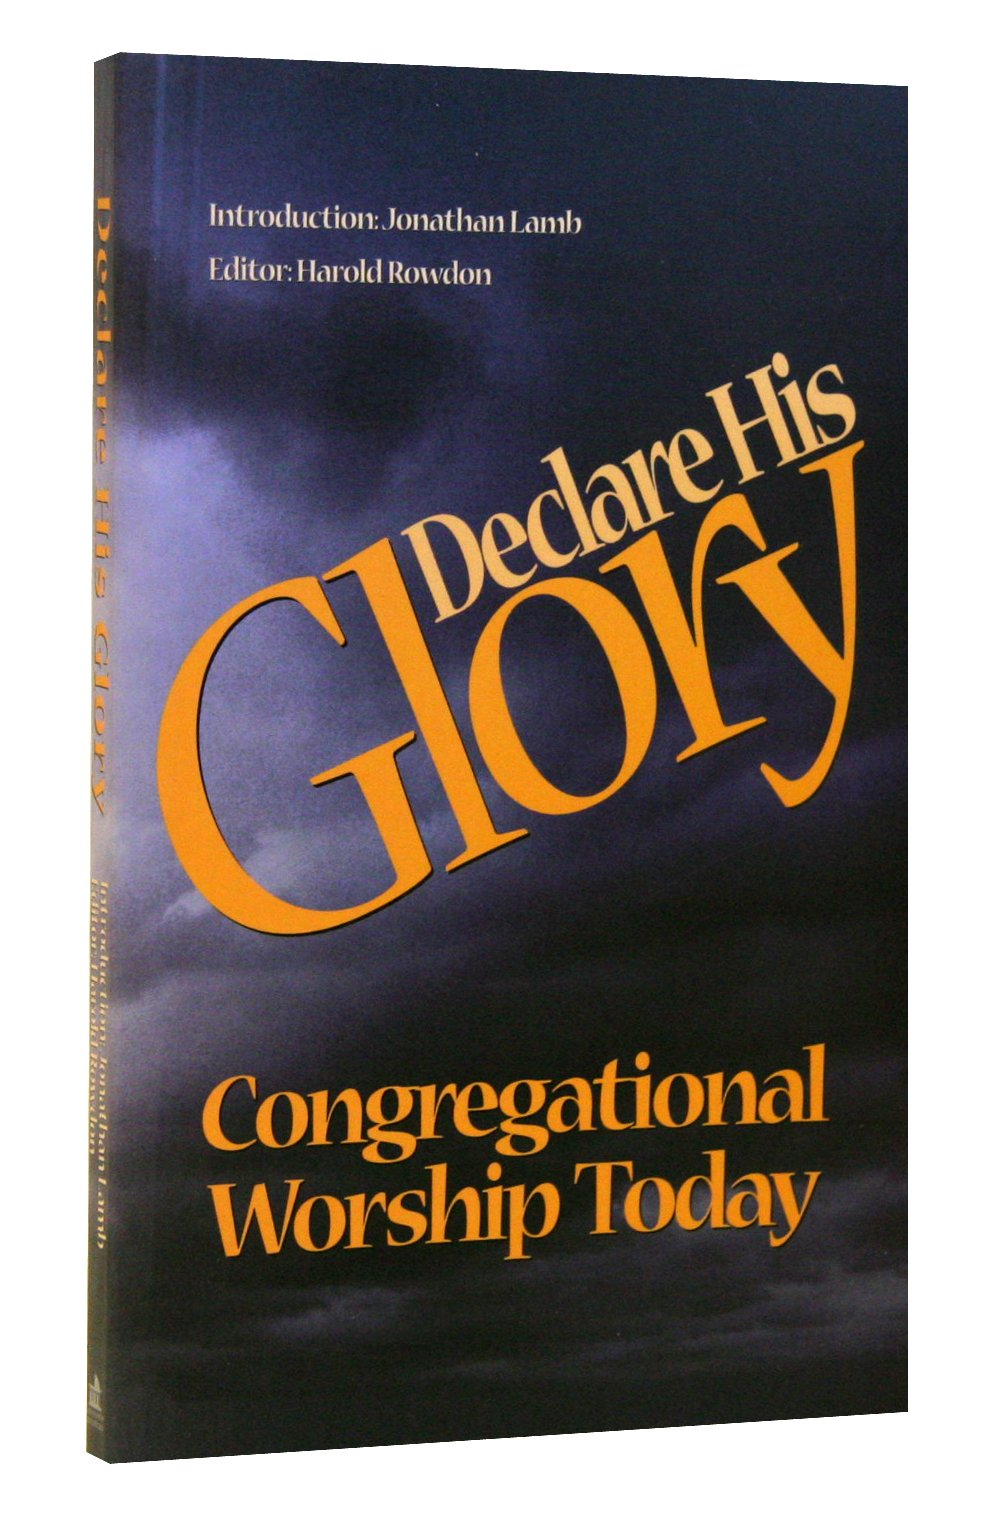 Declare His Glory  Congregational Worship Today